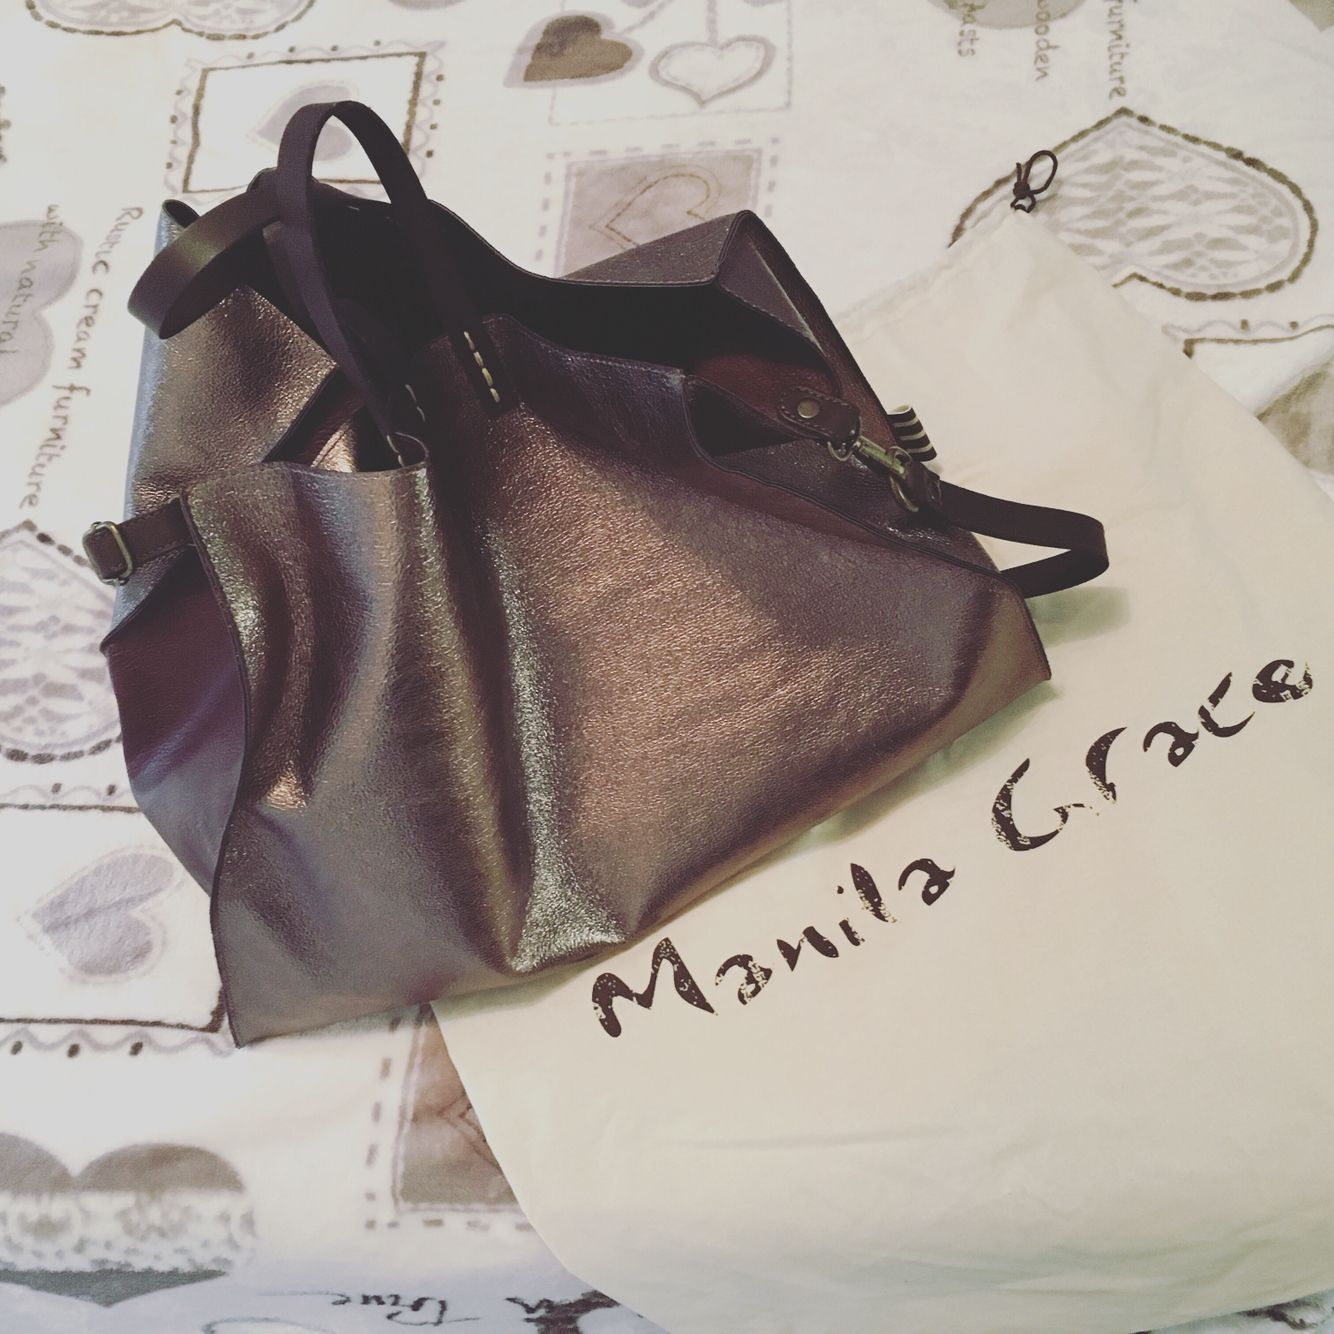 b90dc9b71310a New bag! Manila Grace! Felicia bag! Love it!